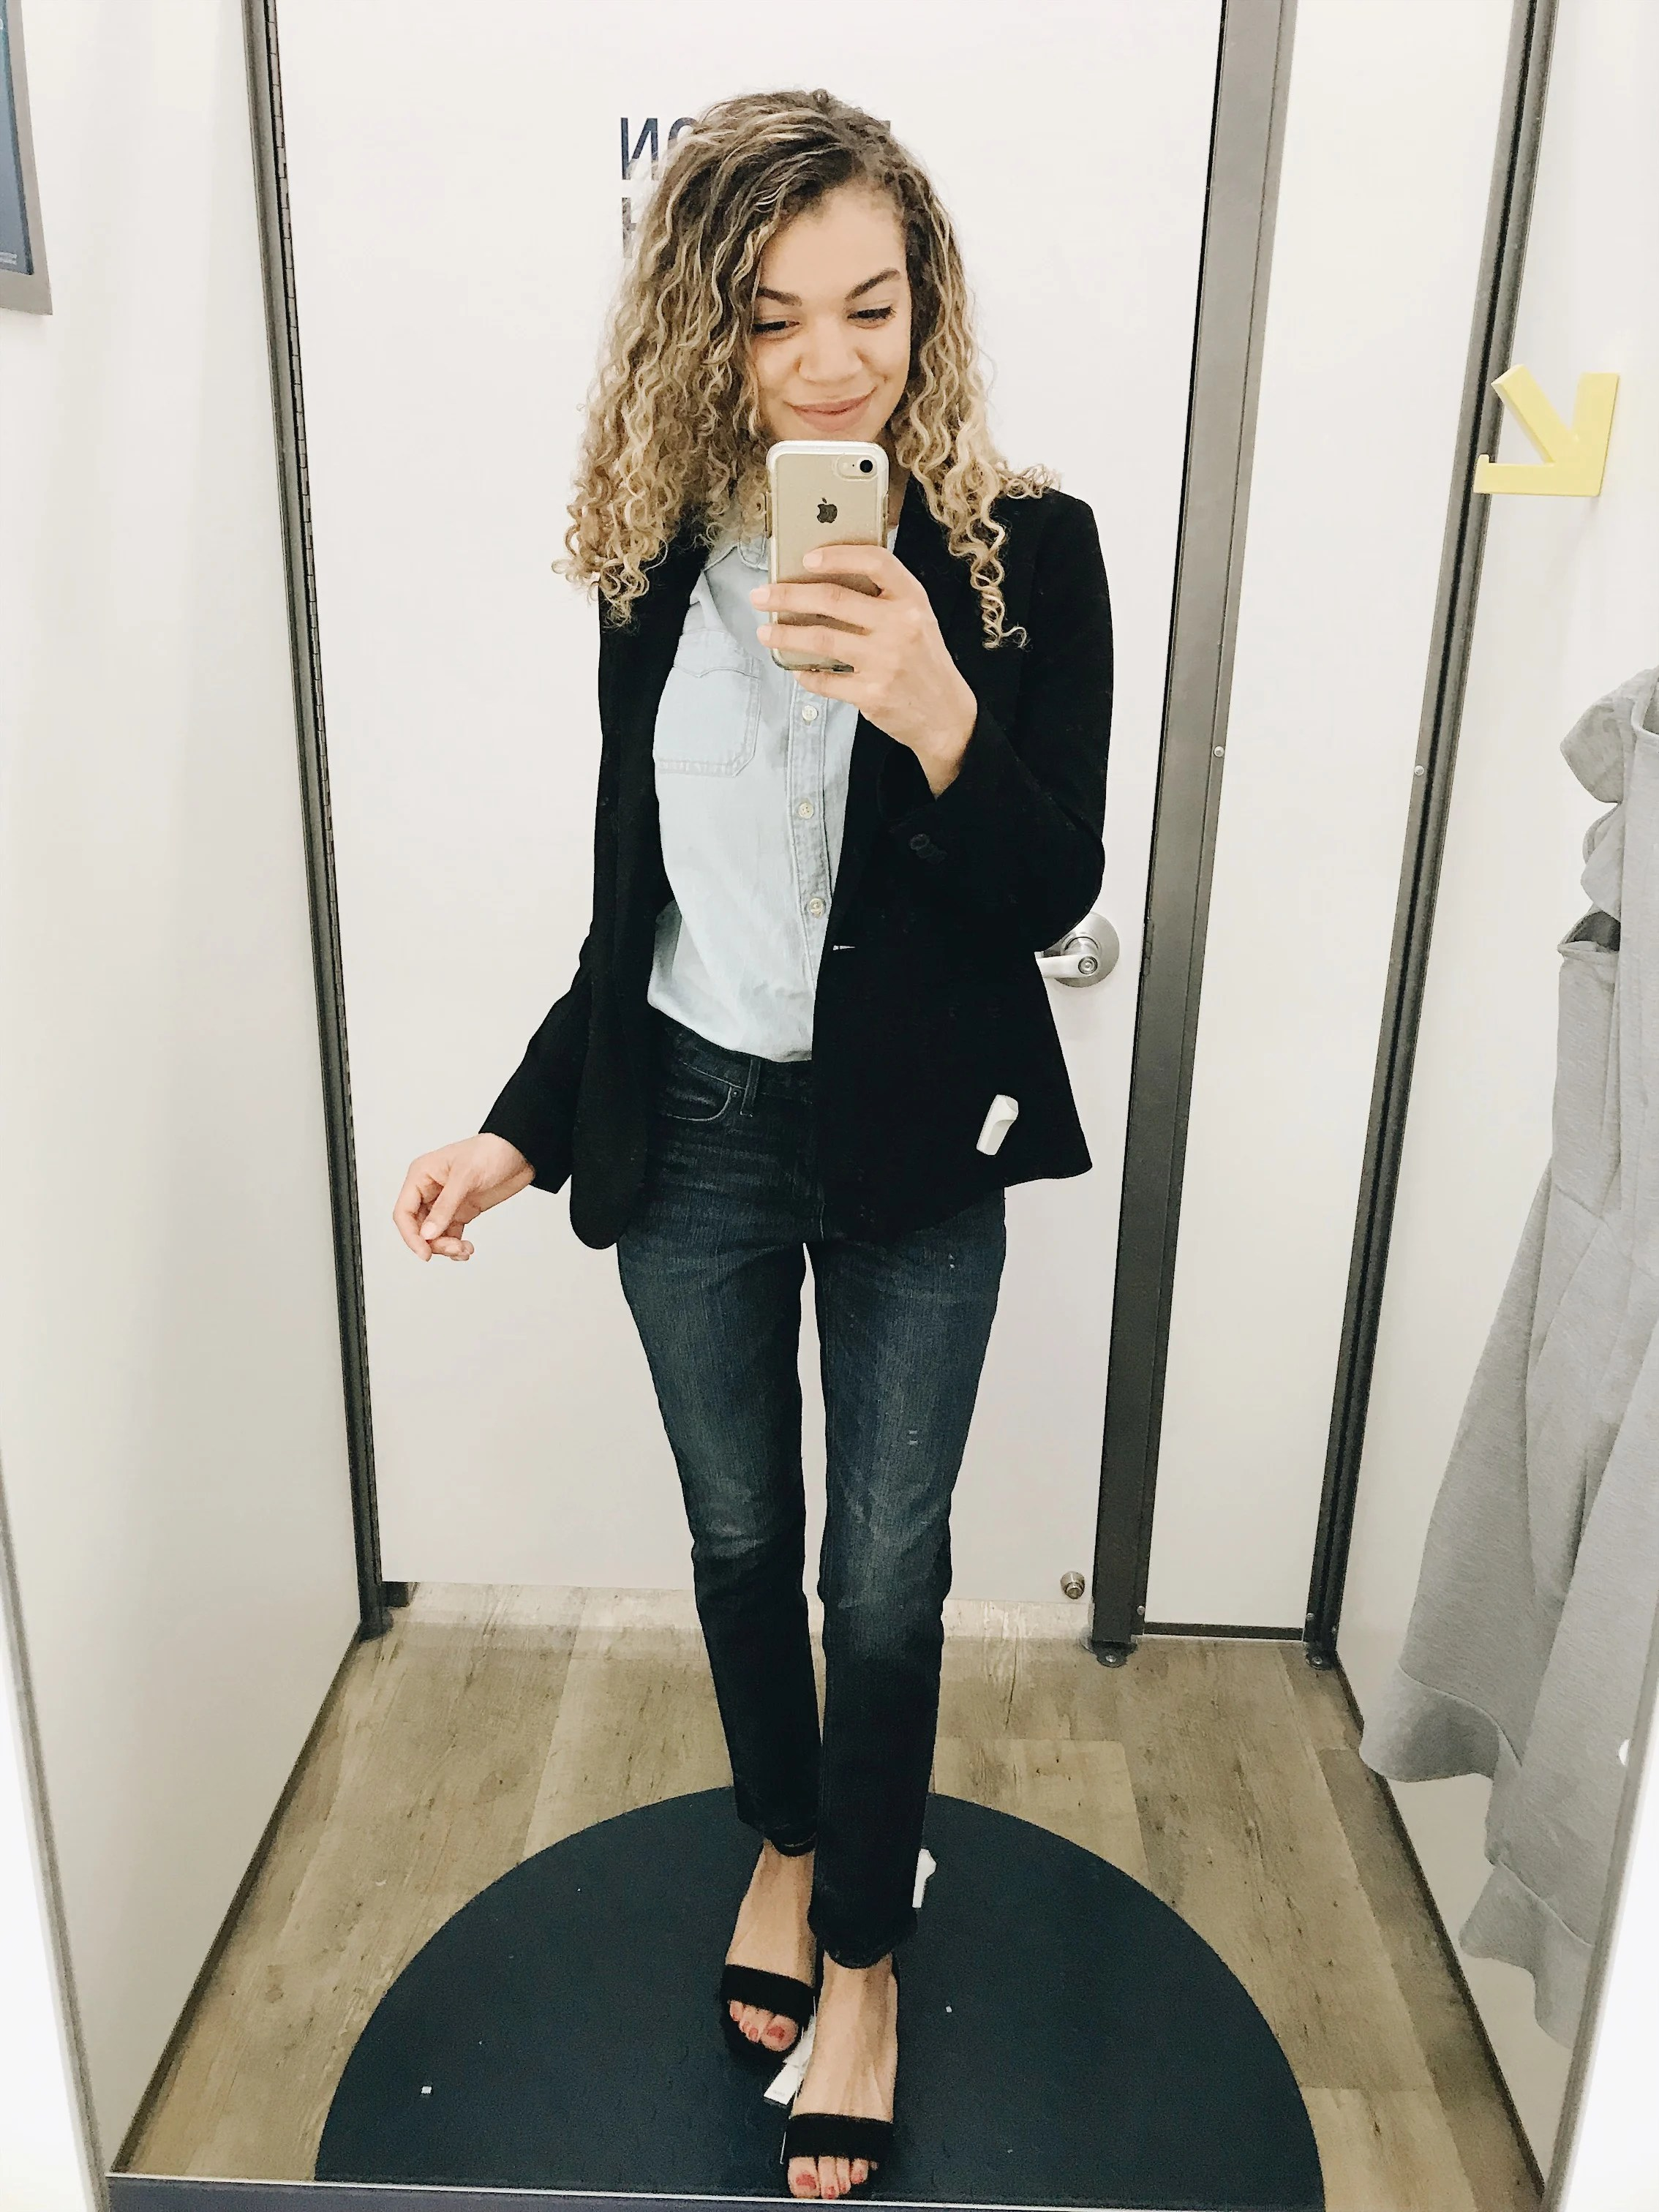 In need of some business casual work outfits that are cute yet comfy at the same time? Check out this post of stylish work outfit ideas for some inspiration!